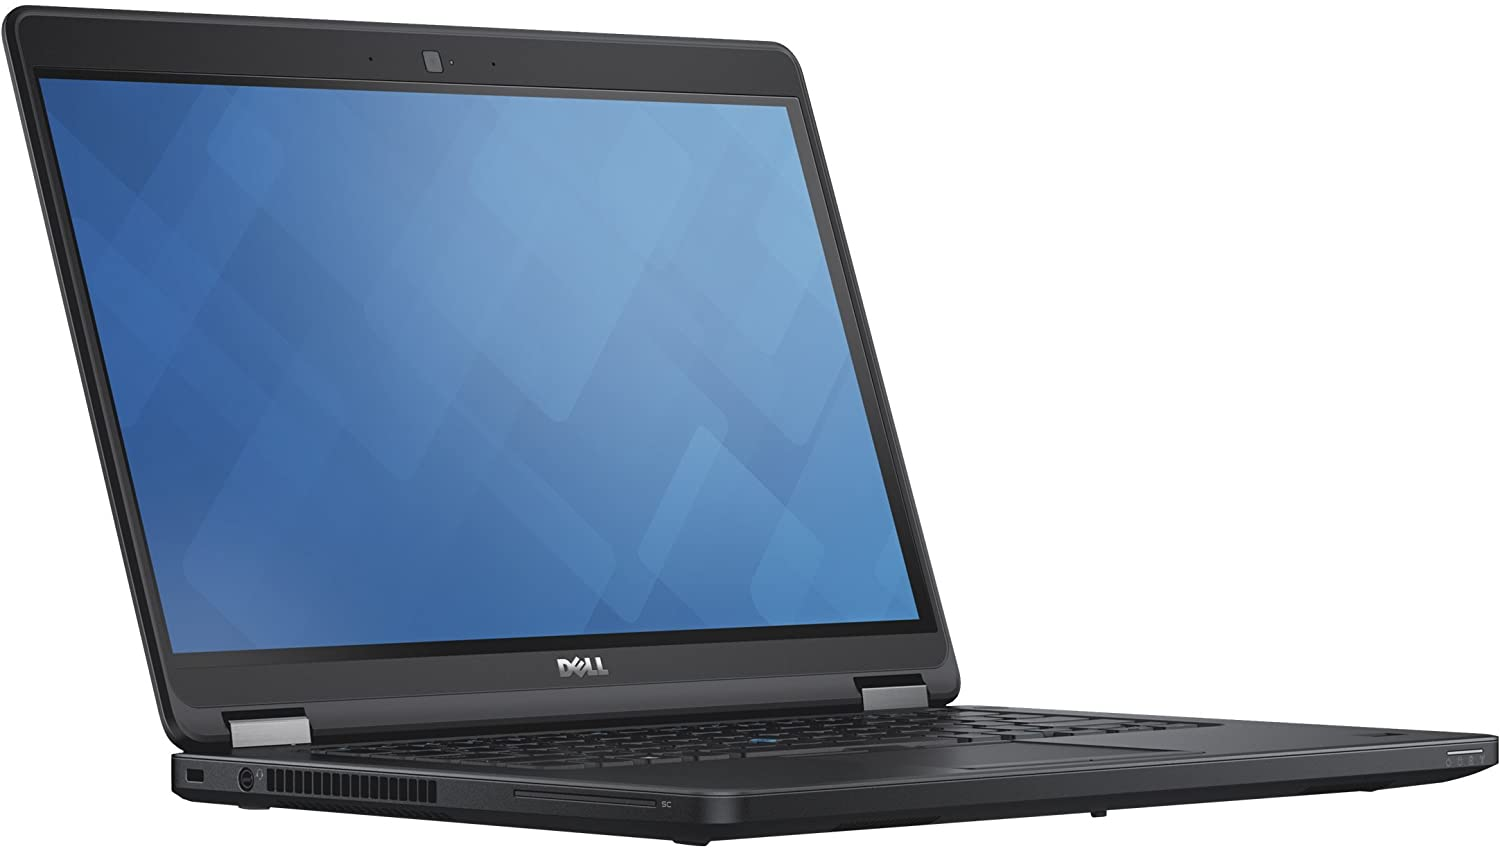 DELL Latitude E5450 14in Laptop, Core i5-5300U 2.3GHz, 8GB Ram, 128GB SSD, Windows 10 Pro 64bit (Renewed)